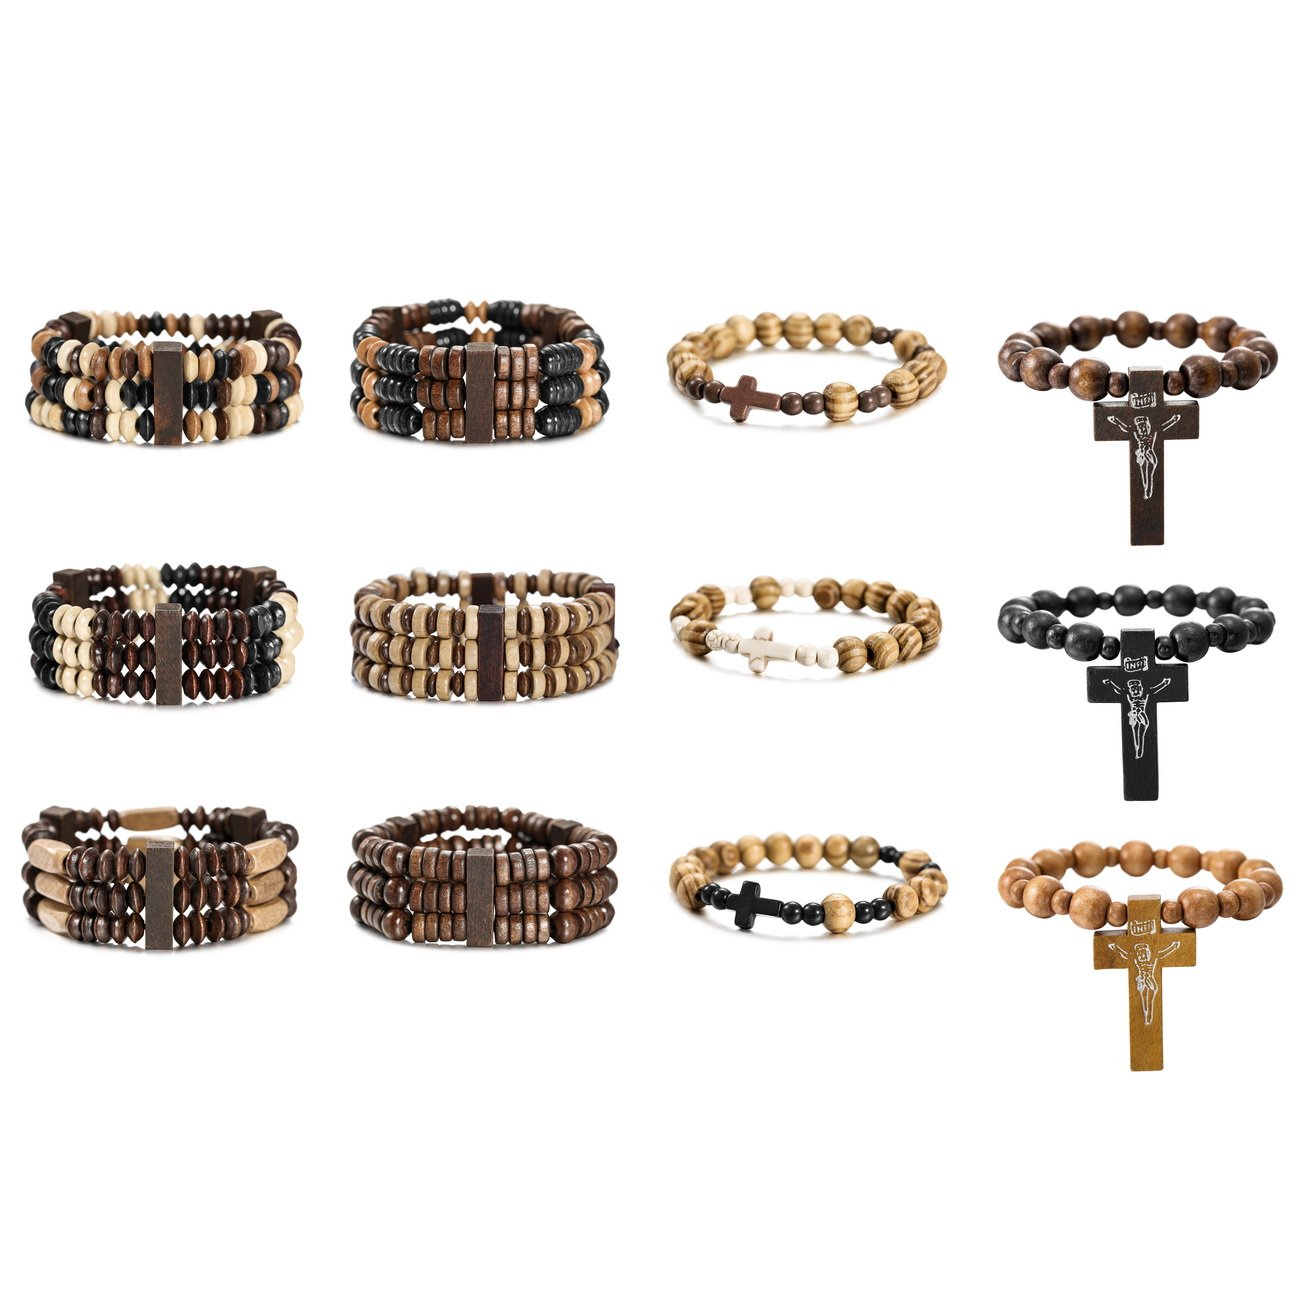 MOWOM 12PCS Alloy Genuine Leather Wood Bracelet Bangle Cross Pentagram Pentacle Bead Mala Elastic Rope Adjustable Set by MOWOM (Image #1)